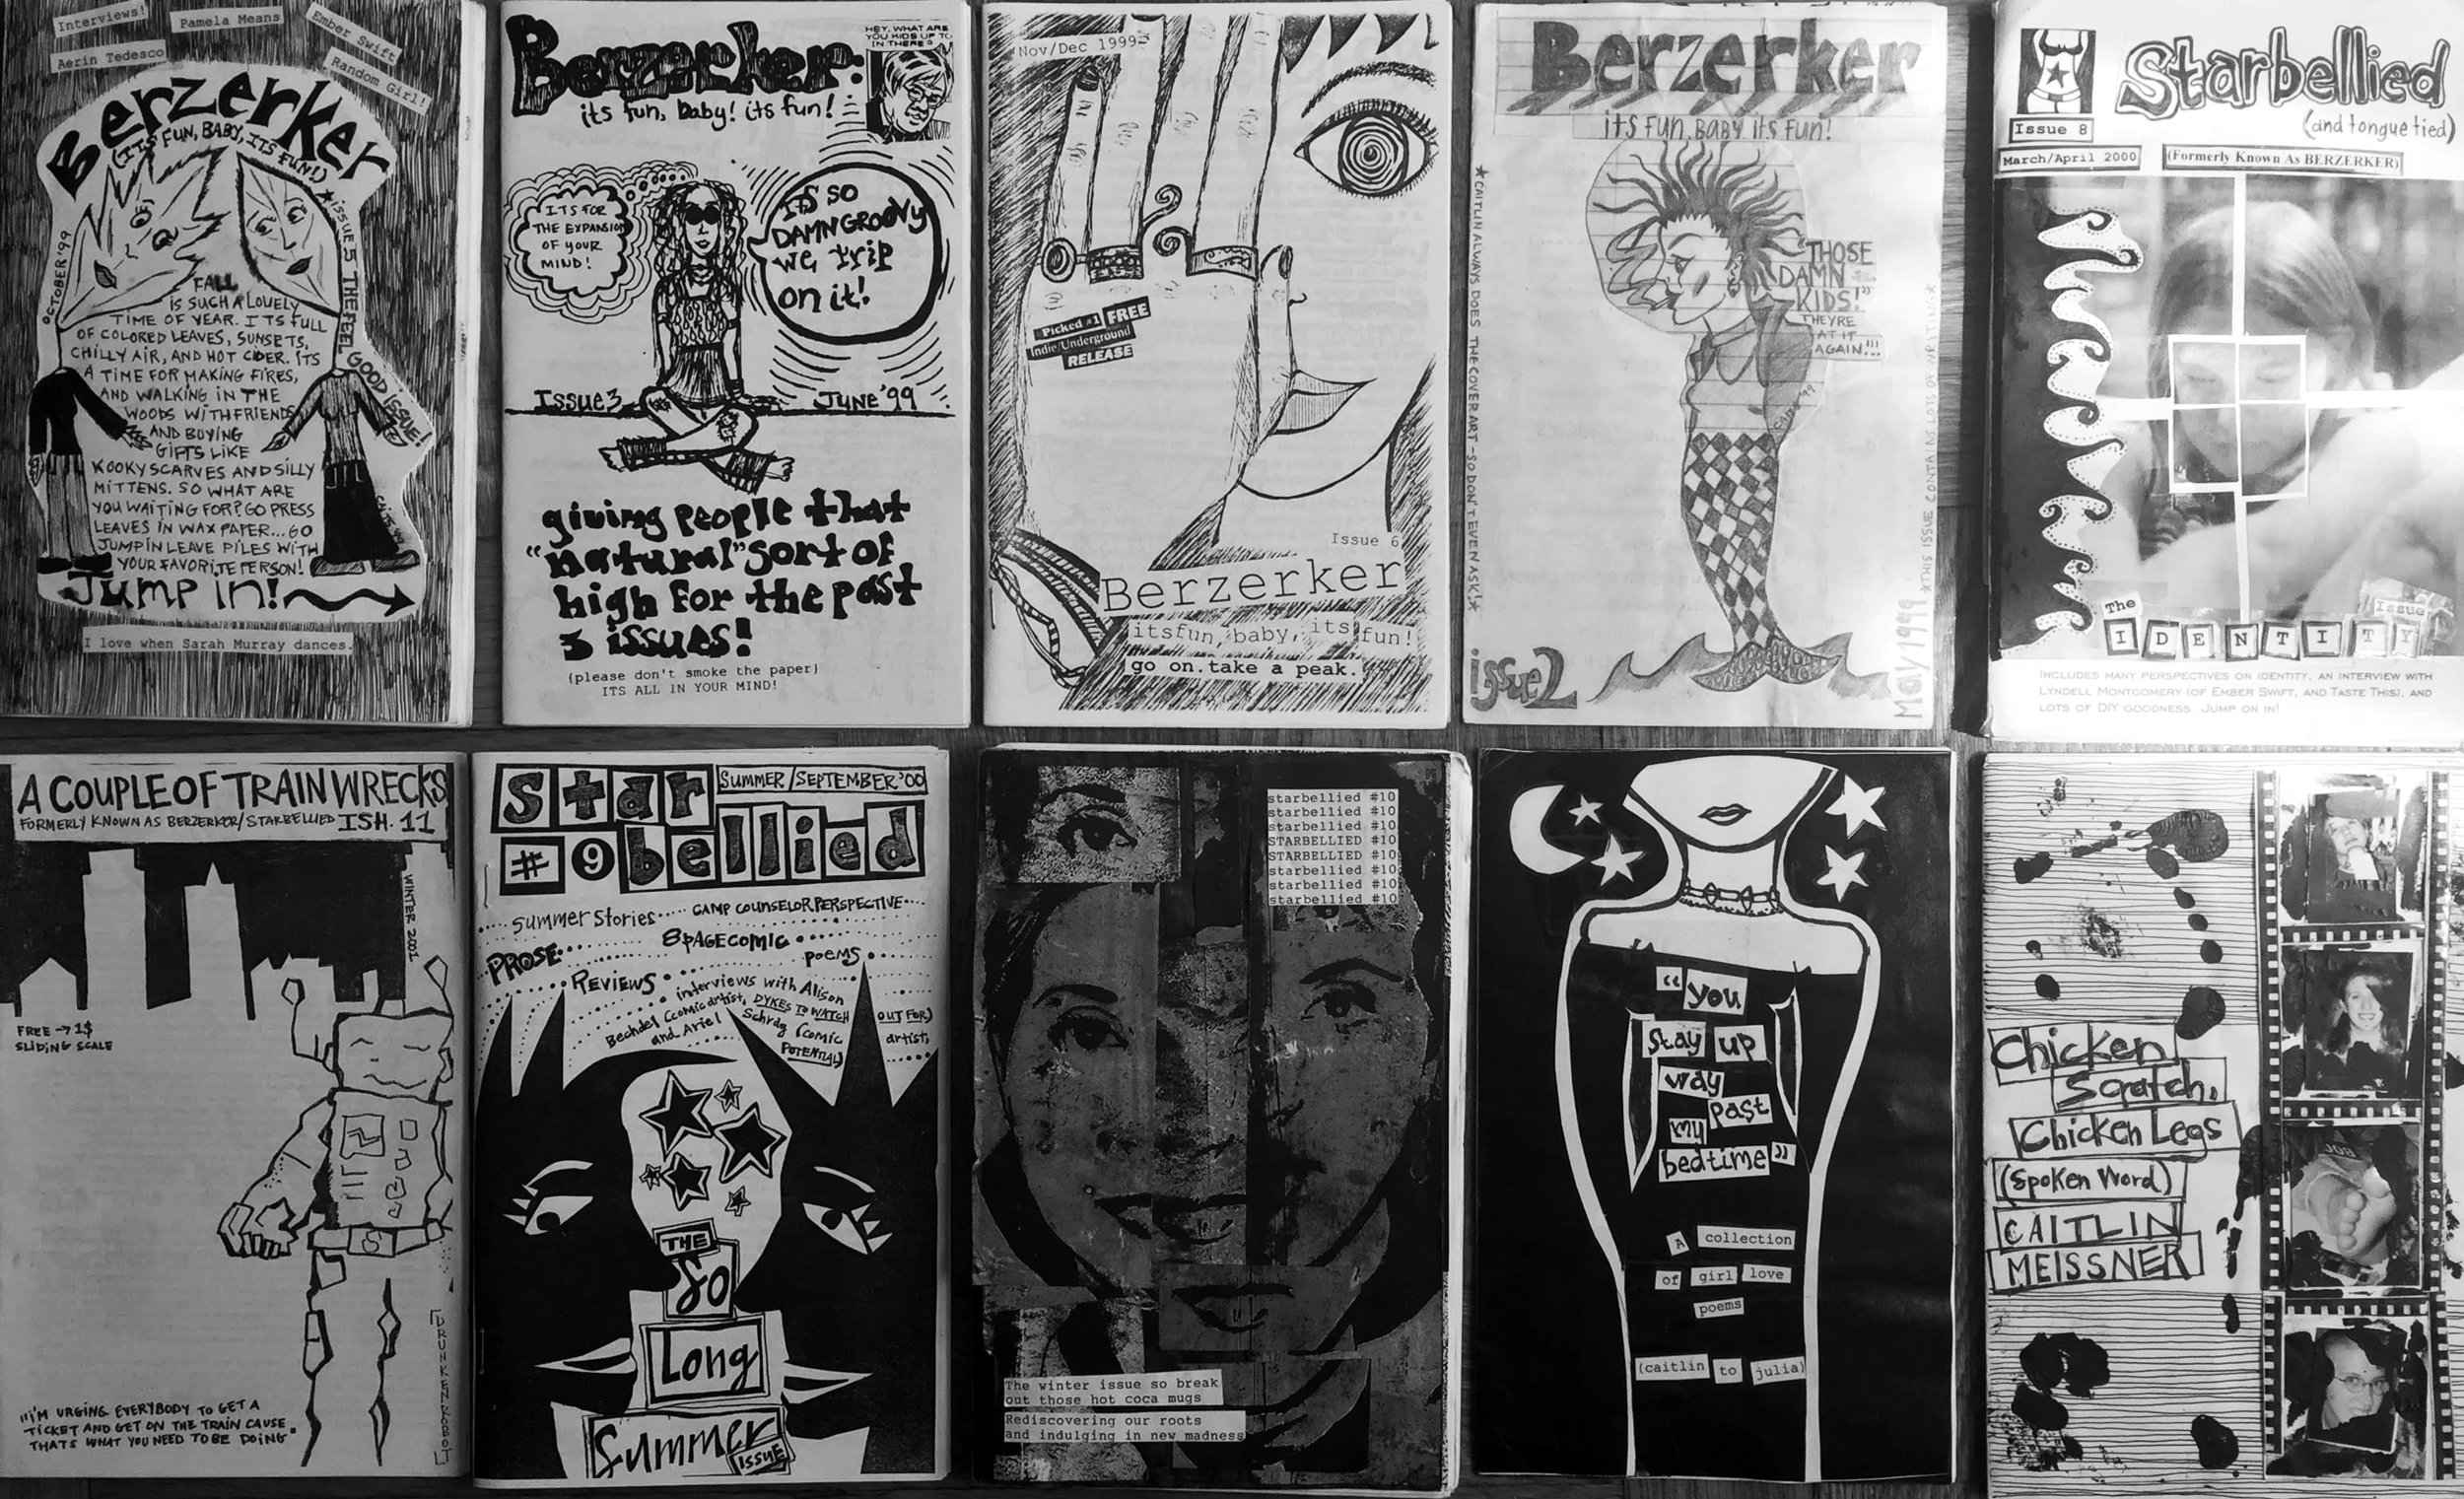 High school era zine covers; courtesy of the artist